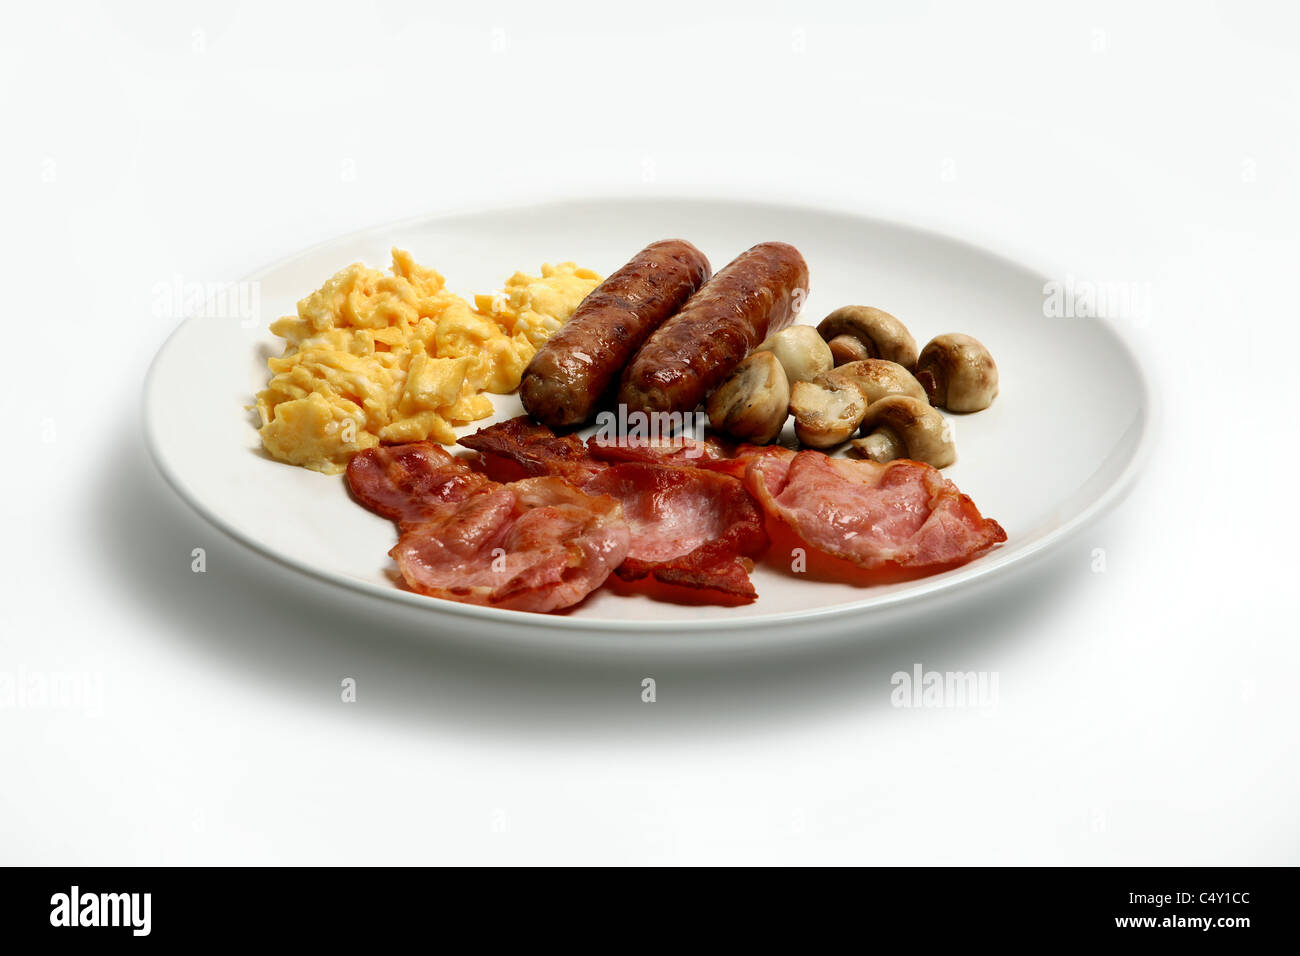 Sausage, bacon, mushrooms and scrambled egg on a white plate - Stock Image